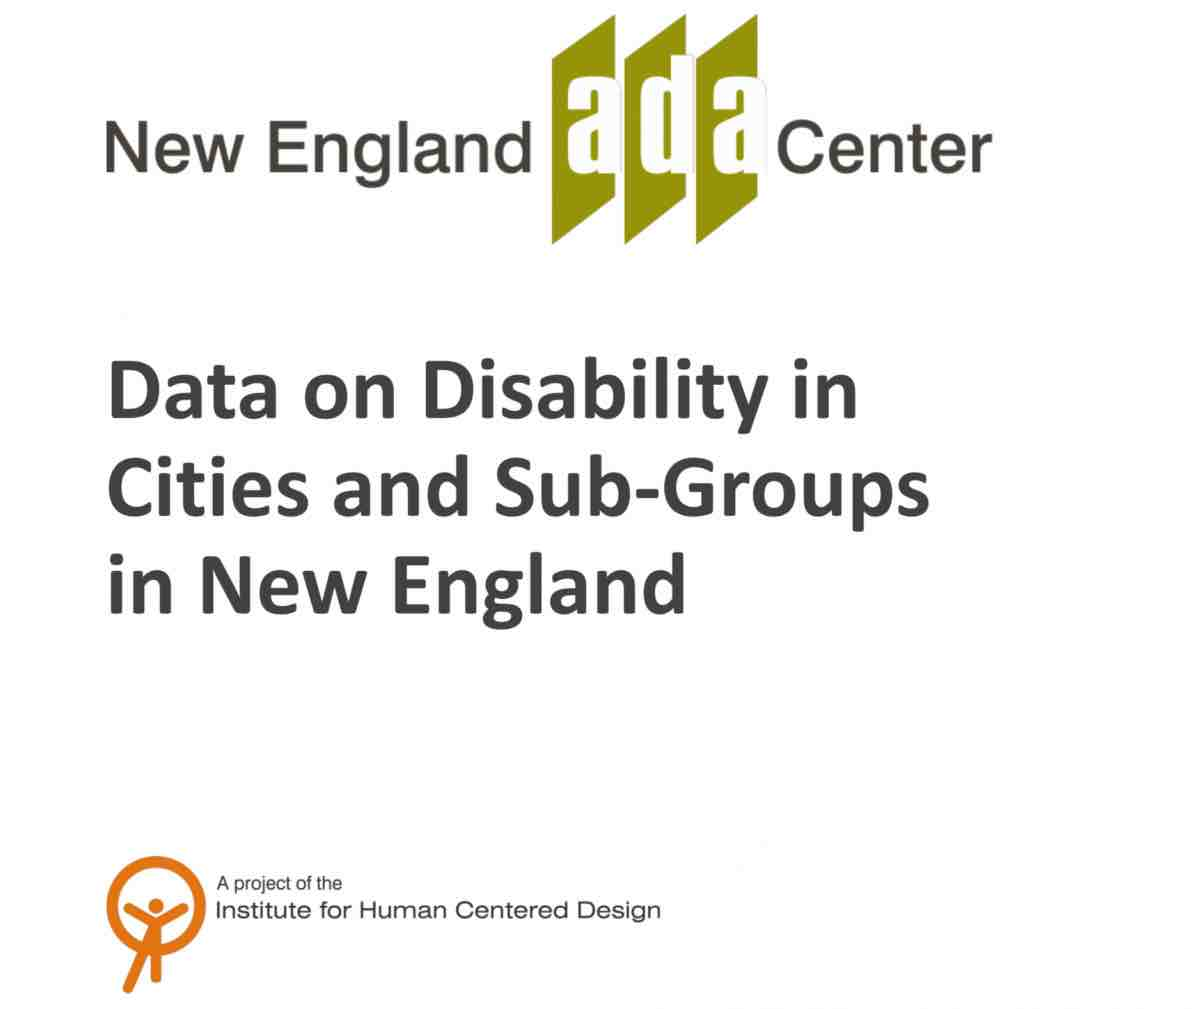 Data on Disabilities in Cities cover